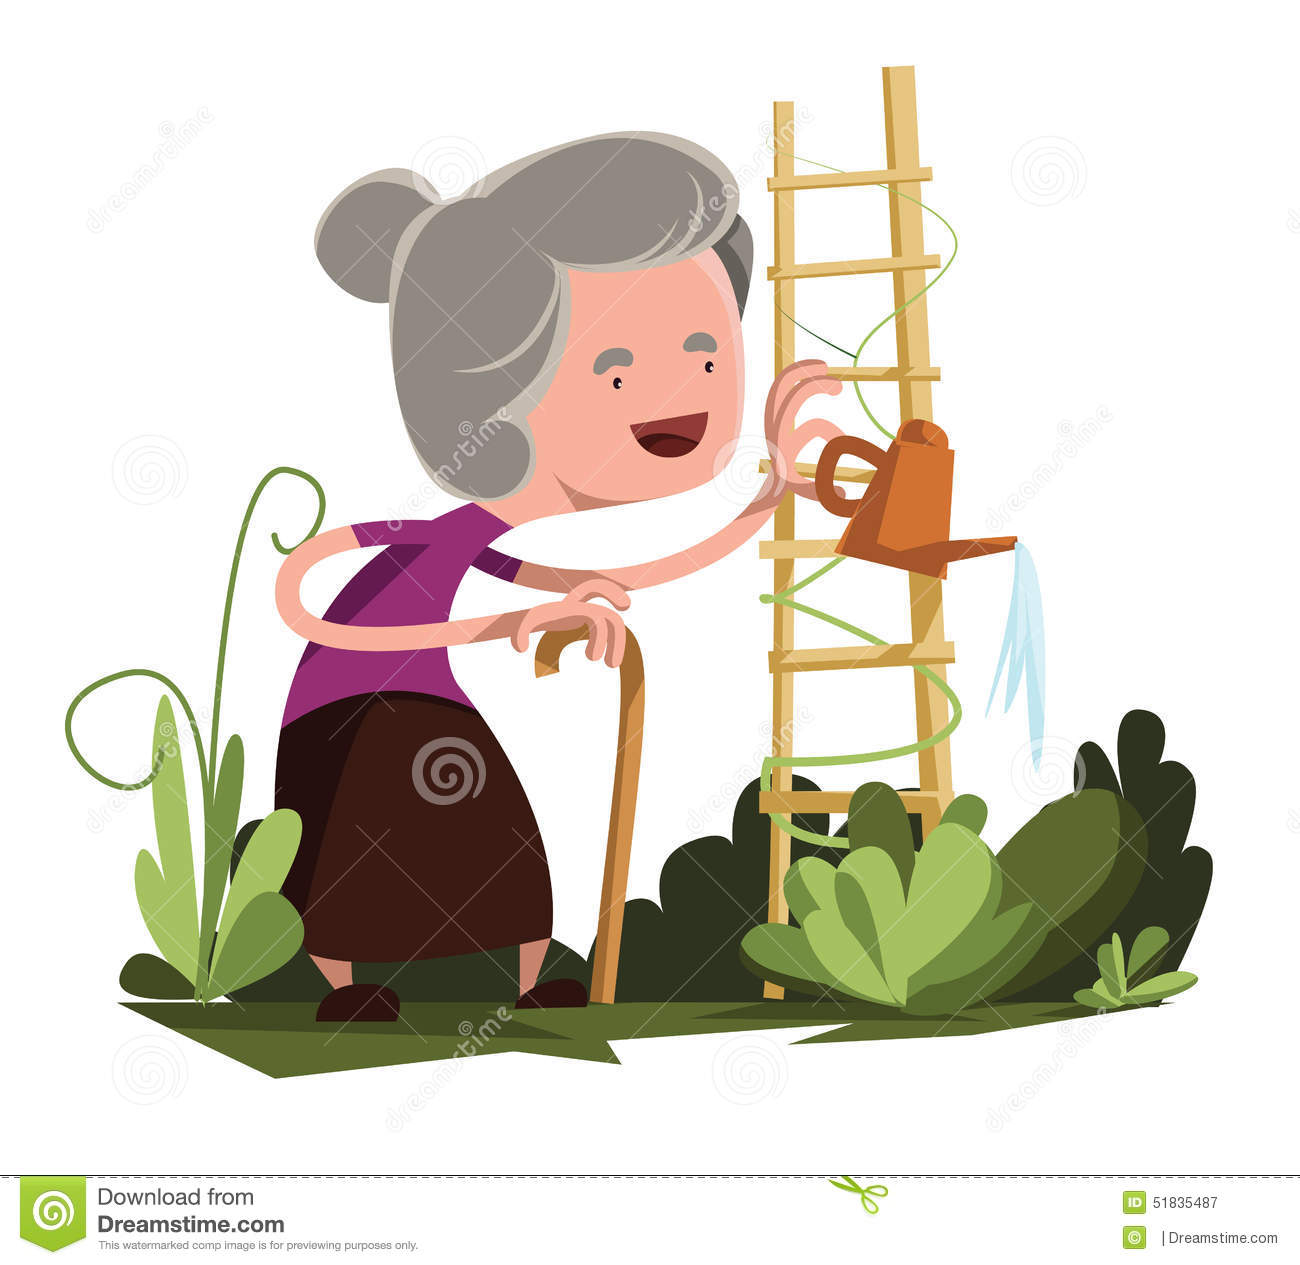 Old granny watering garden illustration cartoon character. Enjoy :).